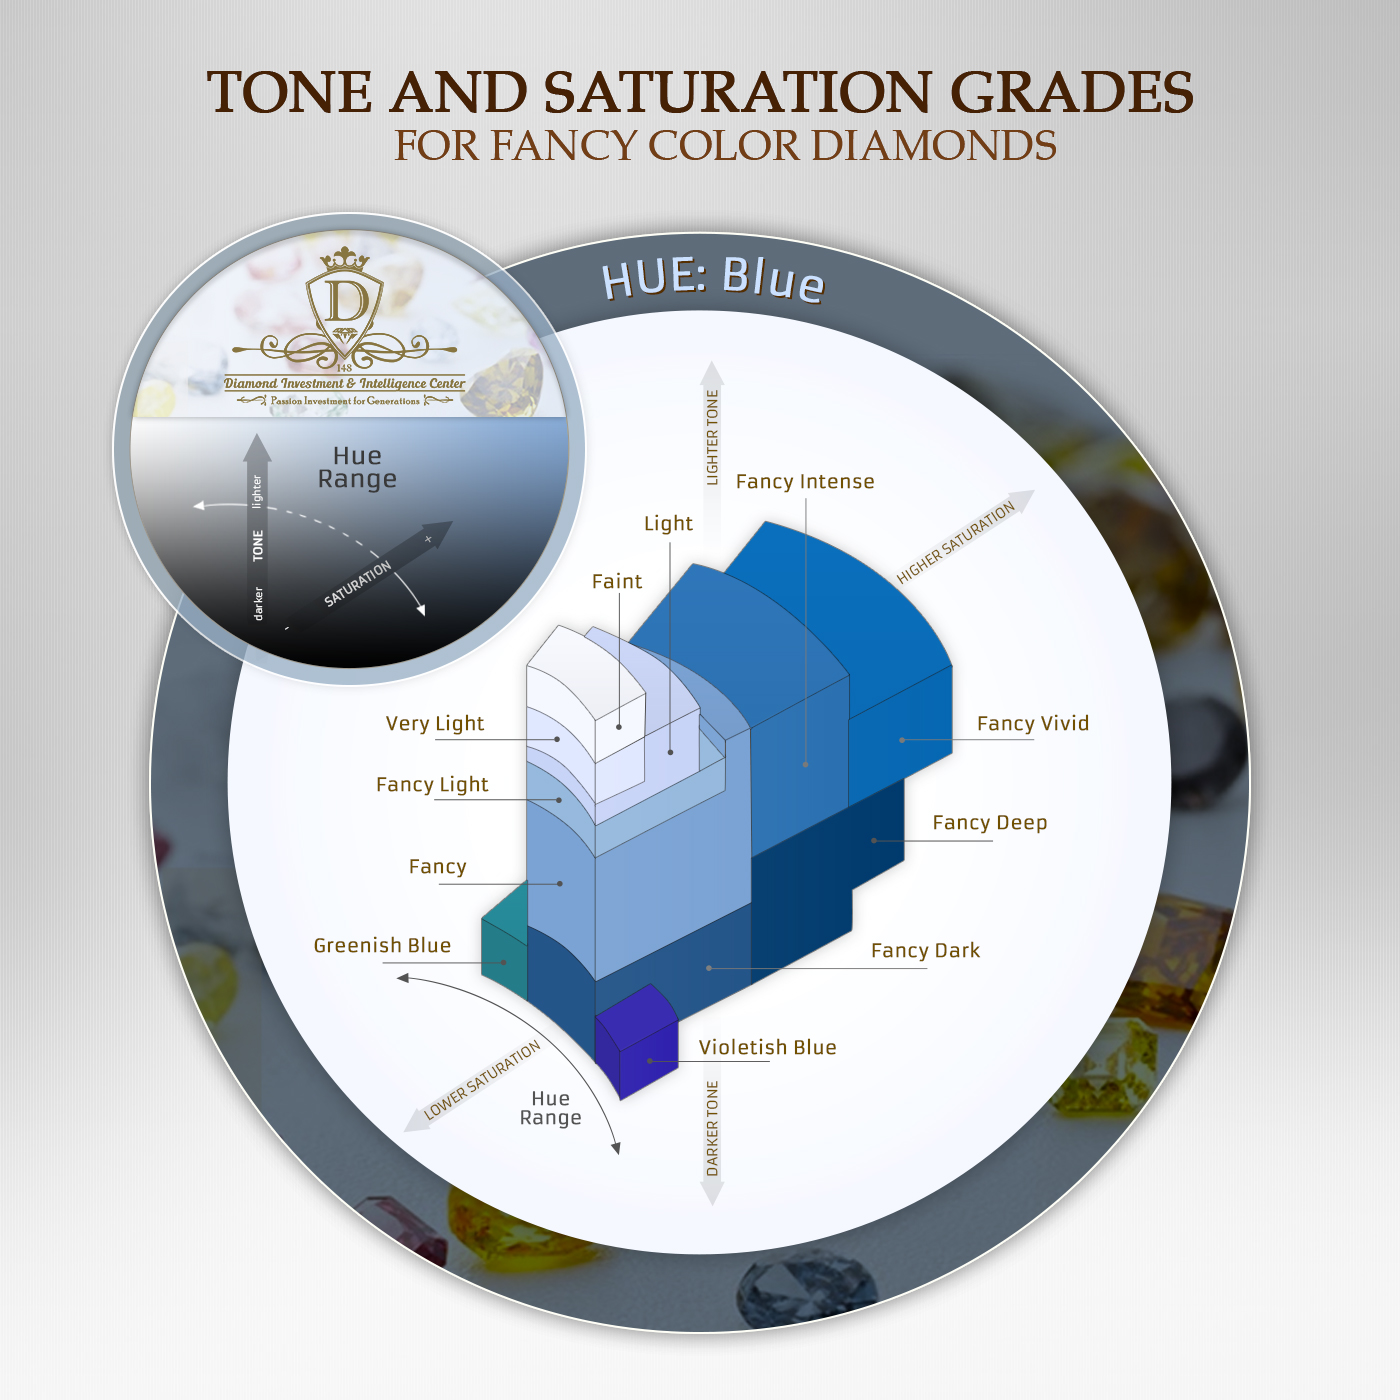 Blue Diamonds tone and saturation grades